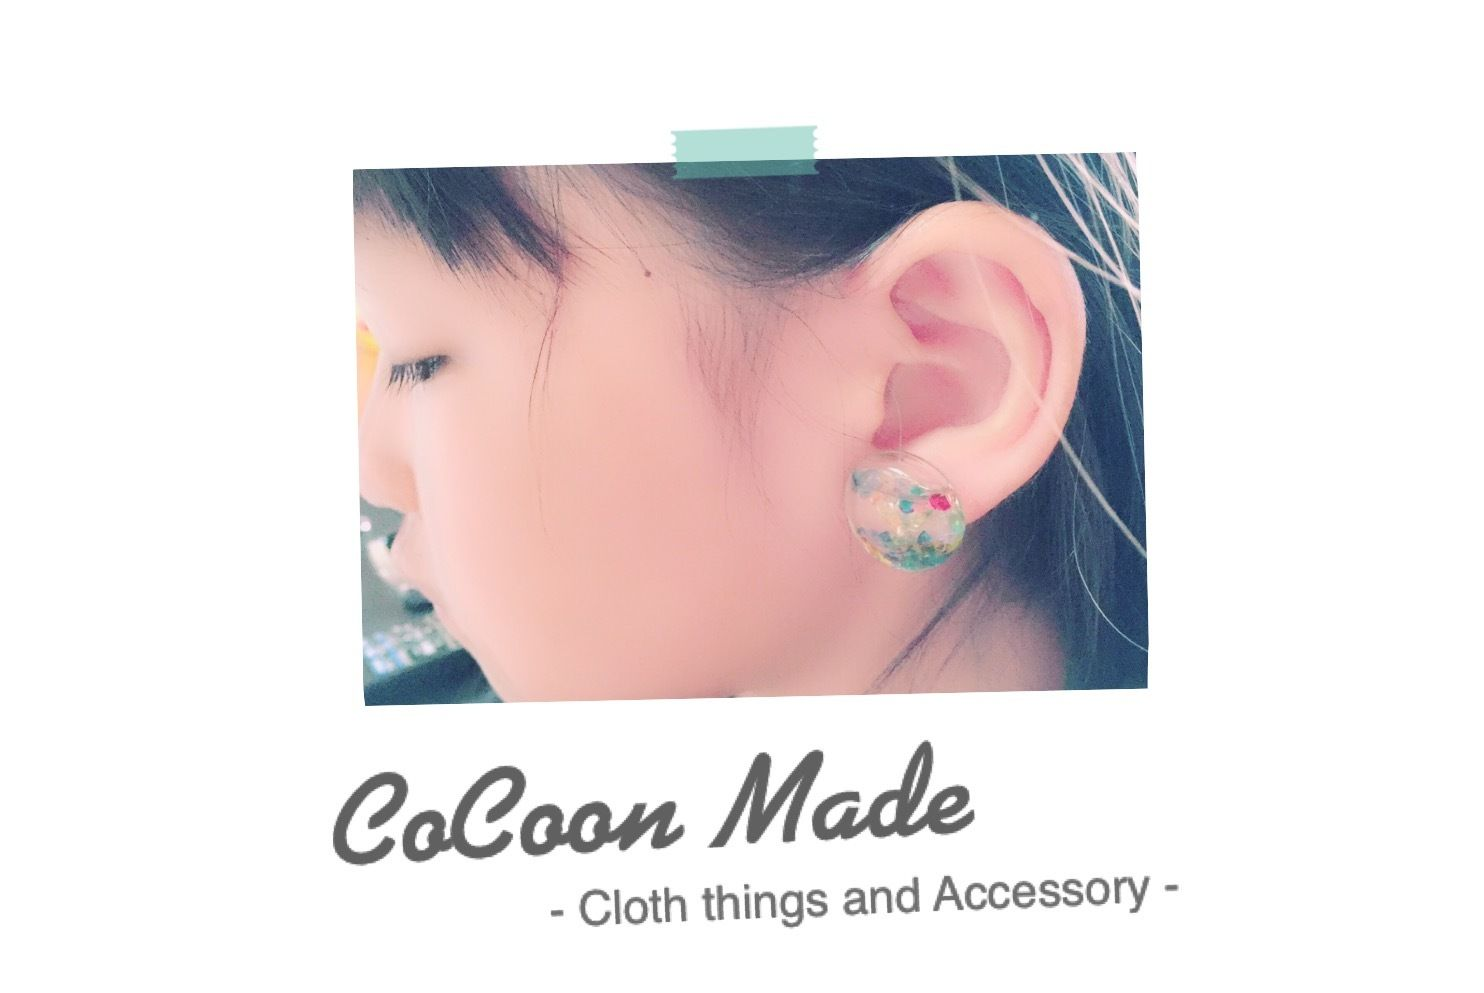 CoCoon Made